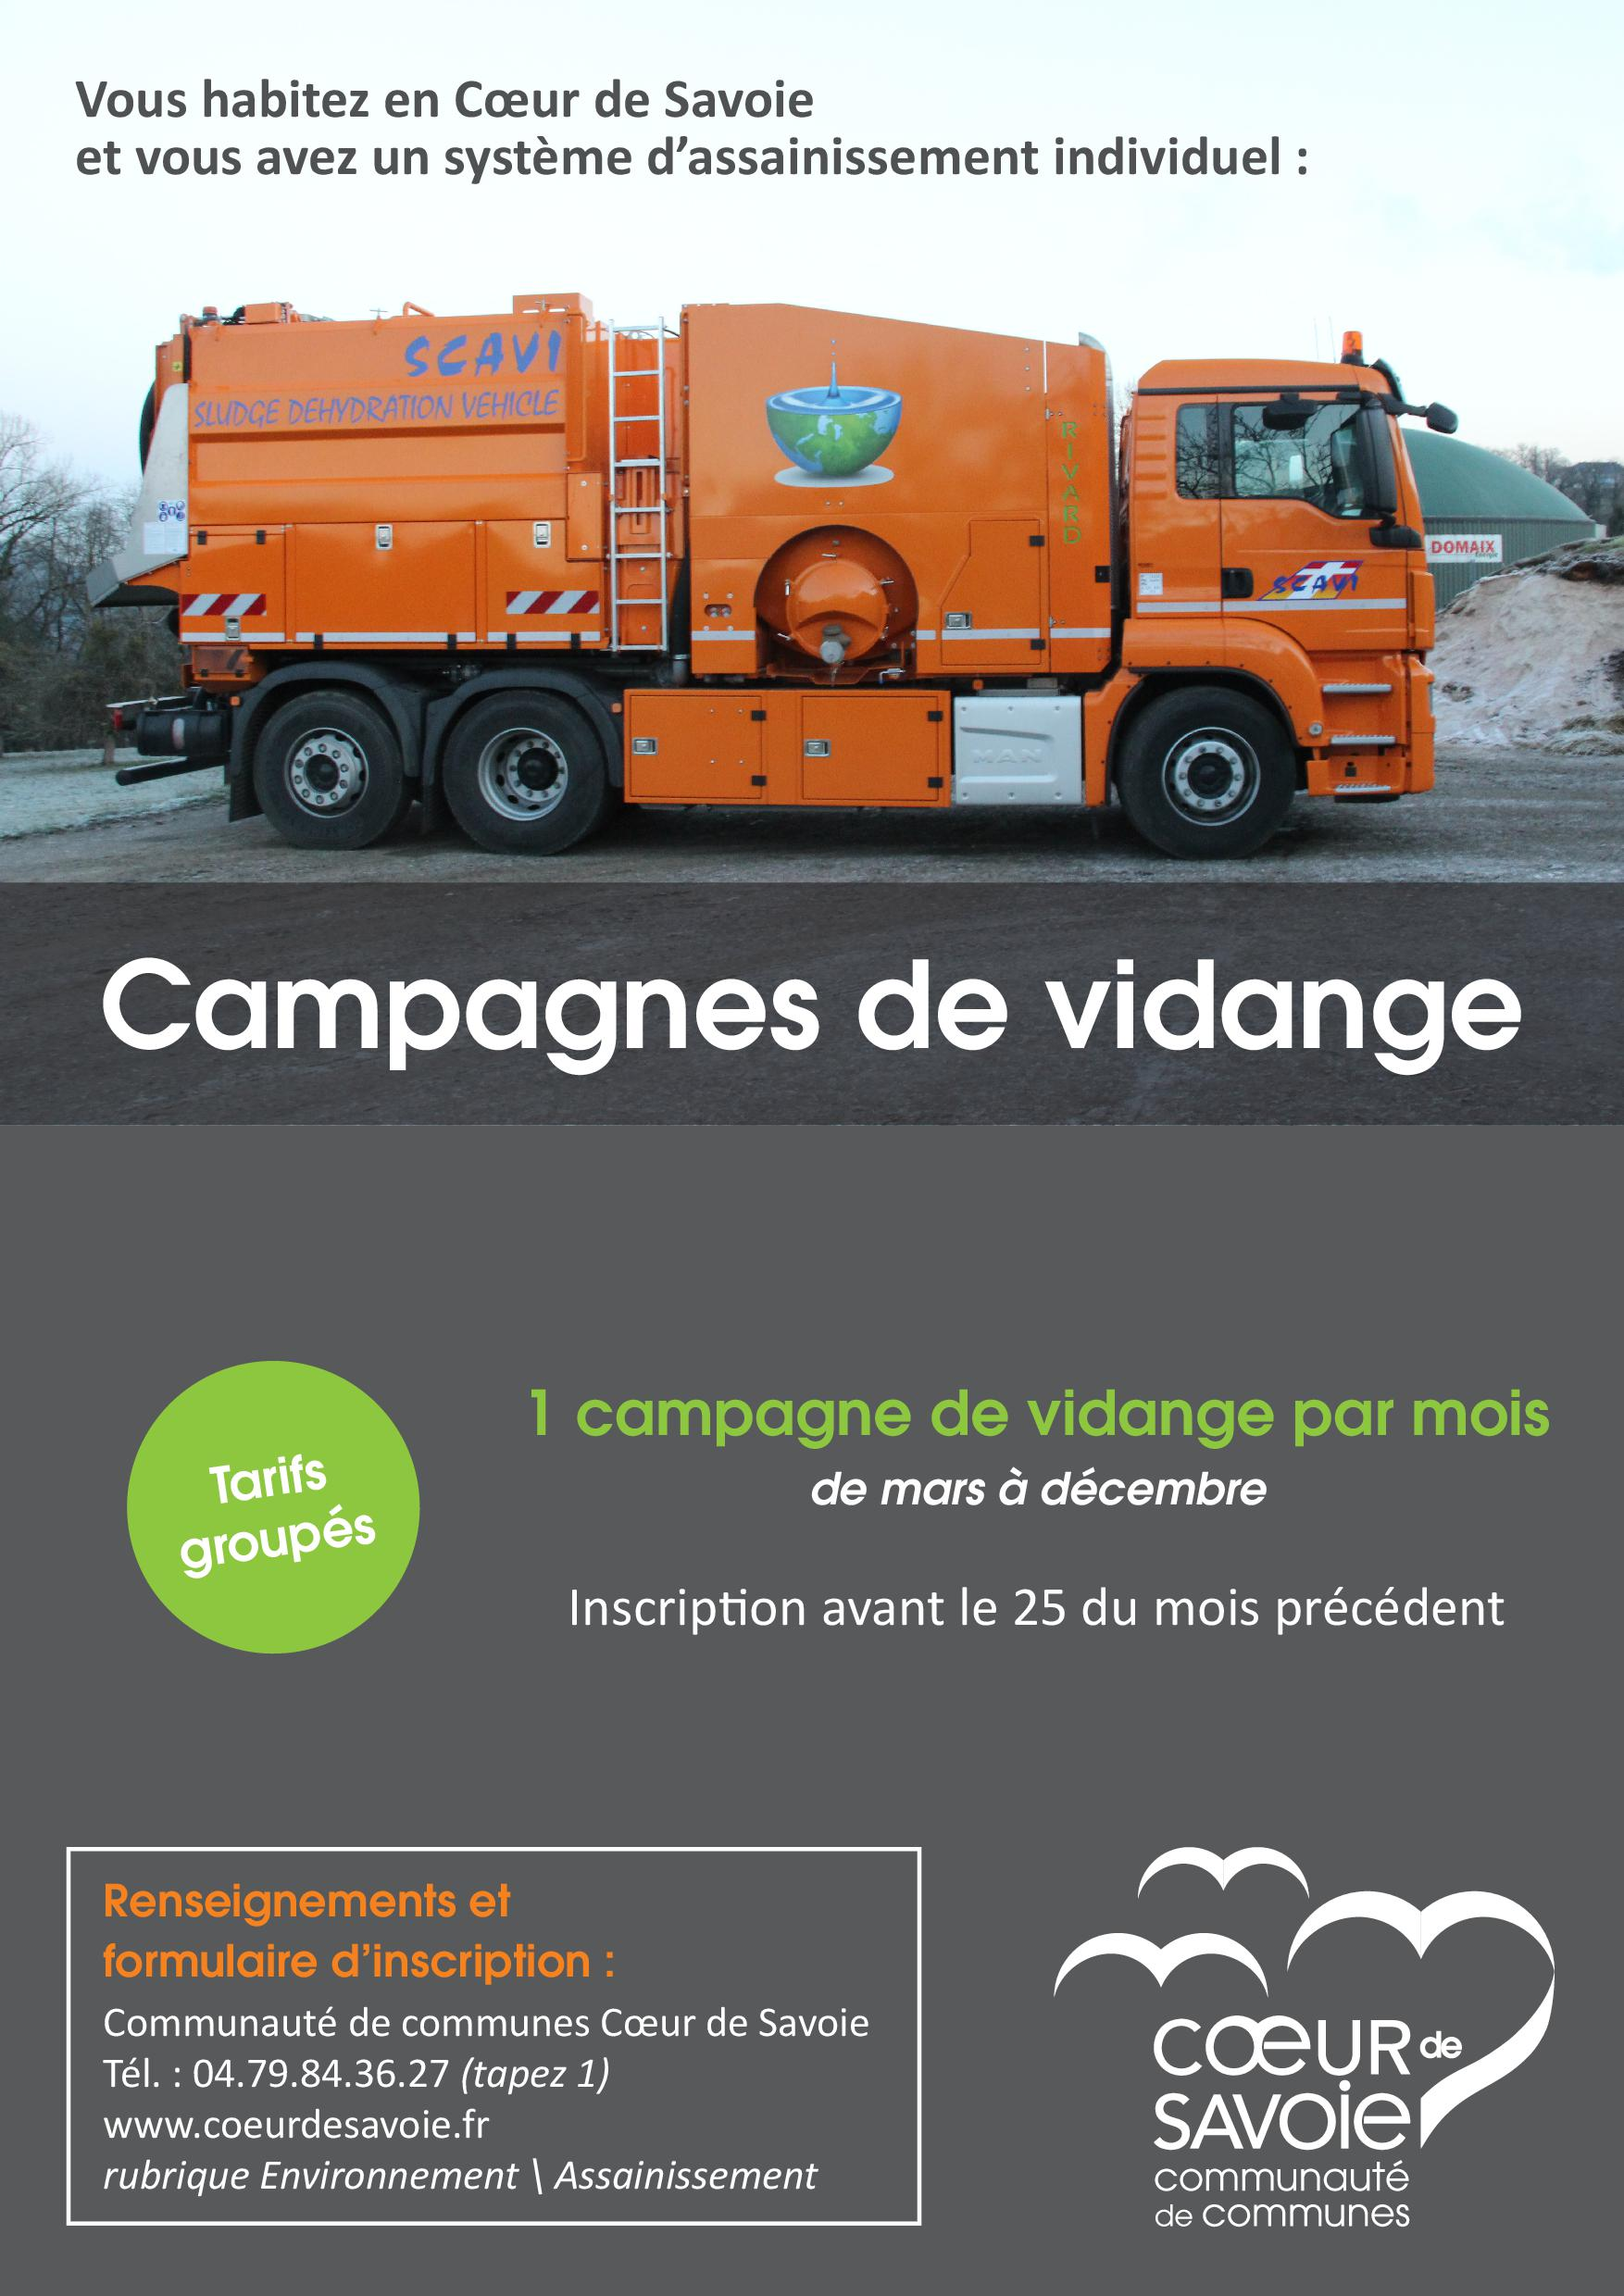 C Users chris Pictures site internet affiche campagne vidange 2019